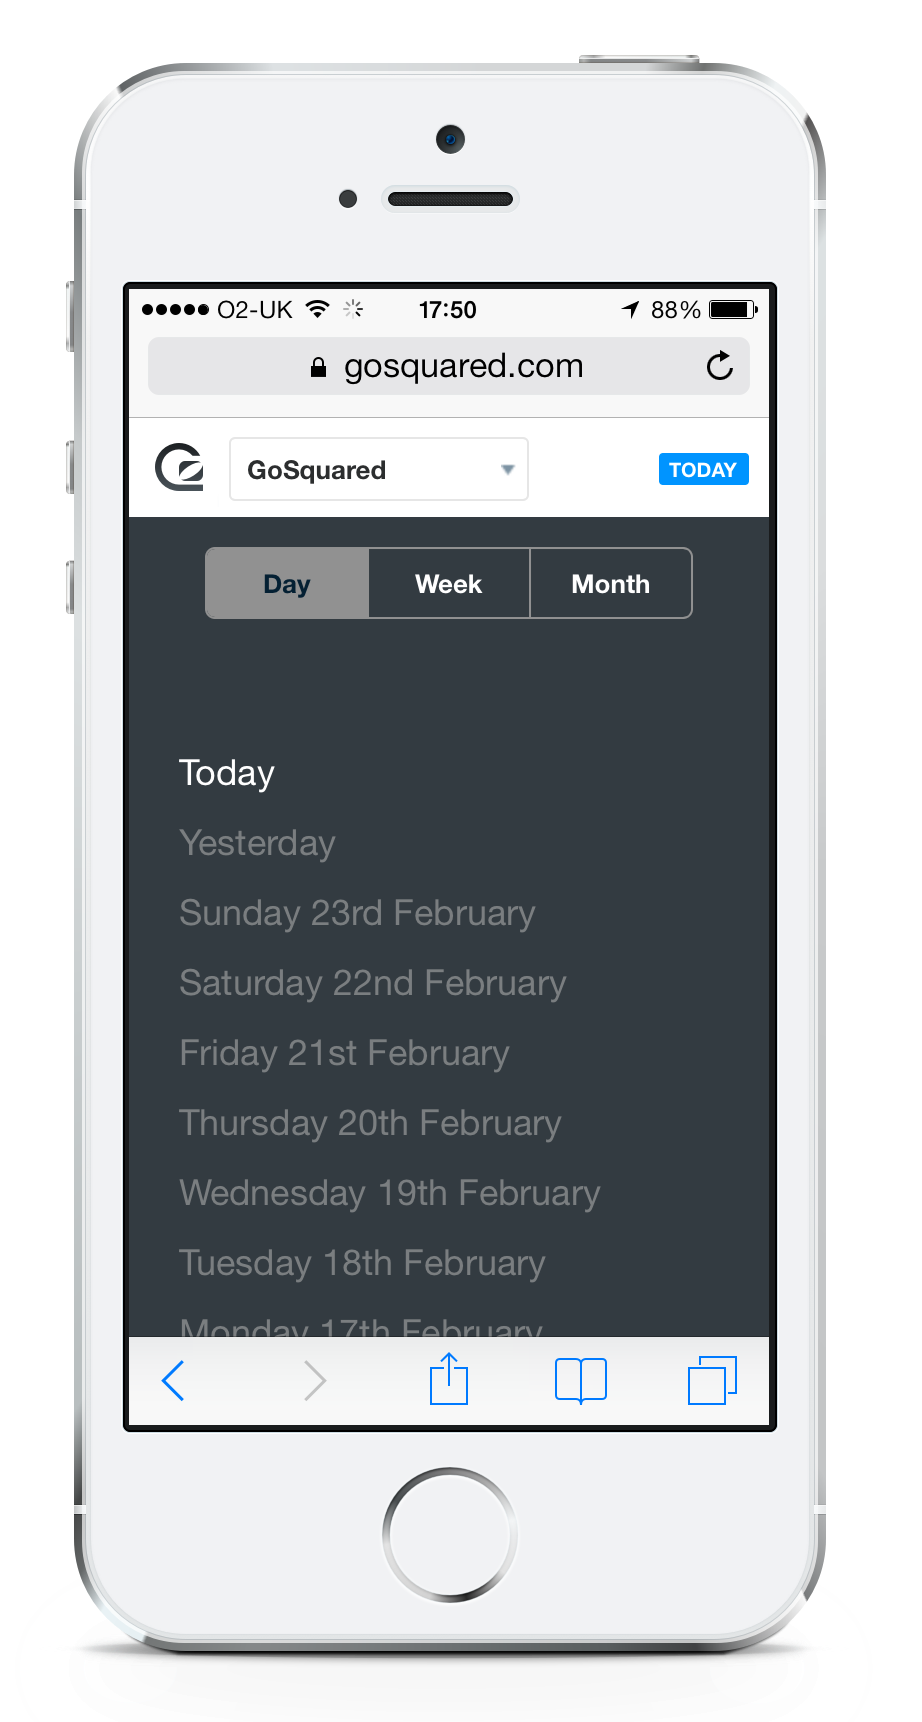 Switch timeframes in GoSquared on mobile easily